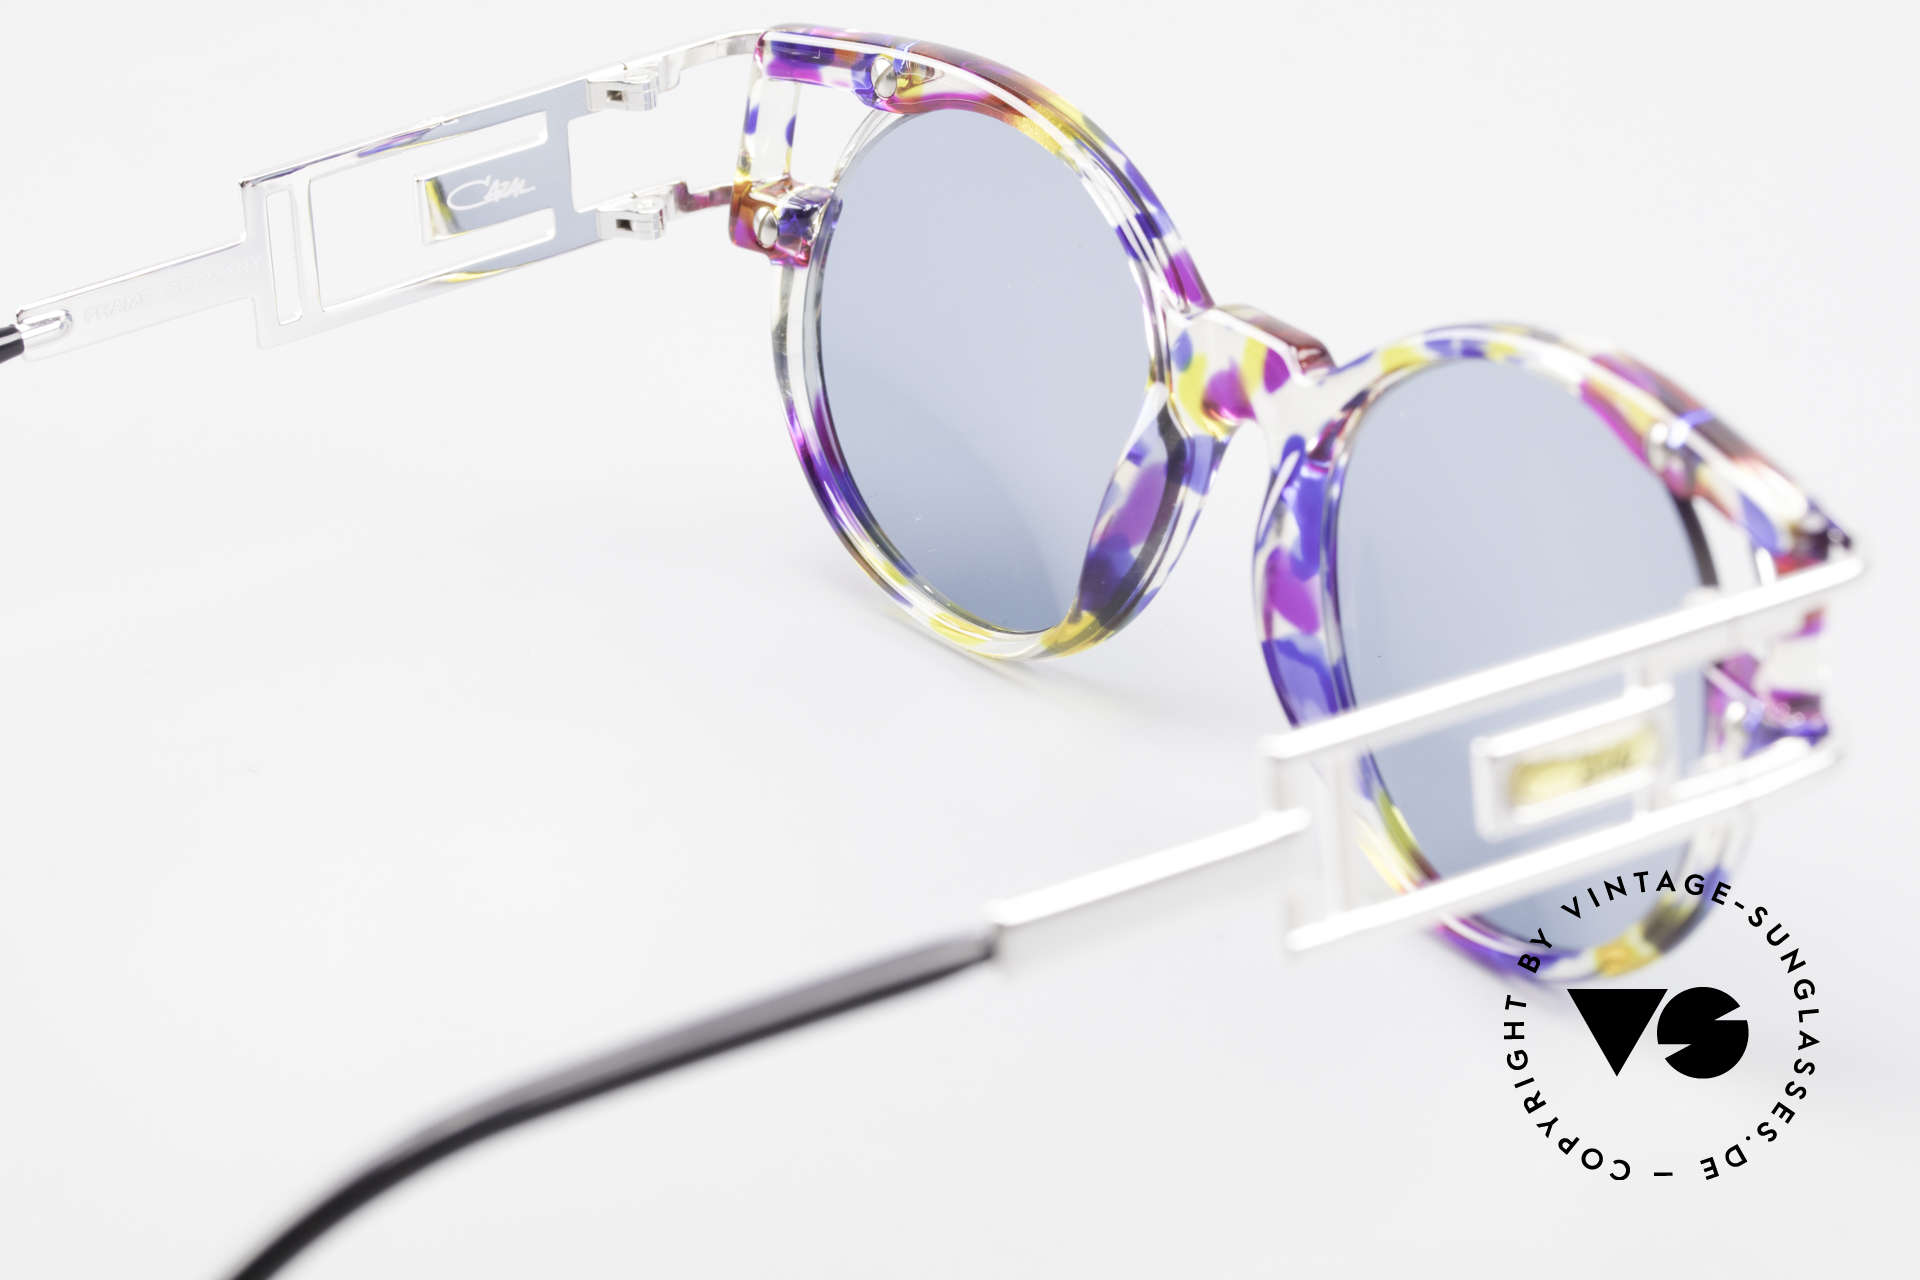 Cazal 353 Old School Hip Hop Shades 90s, NO RETRO SUNGLASSES, but a 27 years old ORIGINAL, Made for Men and Women